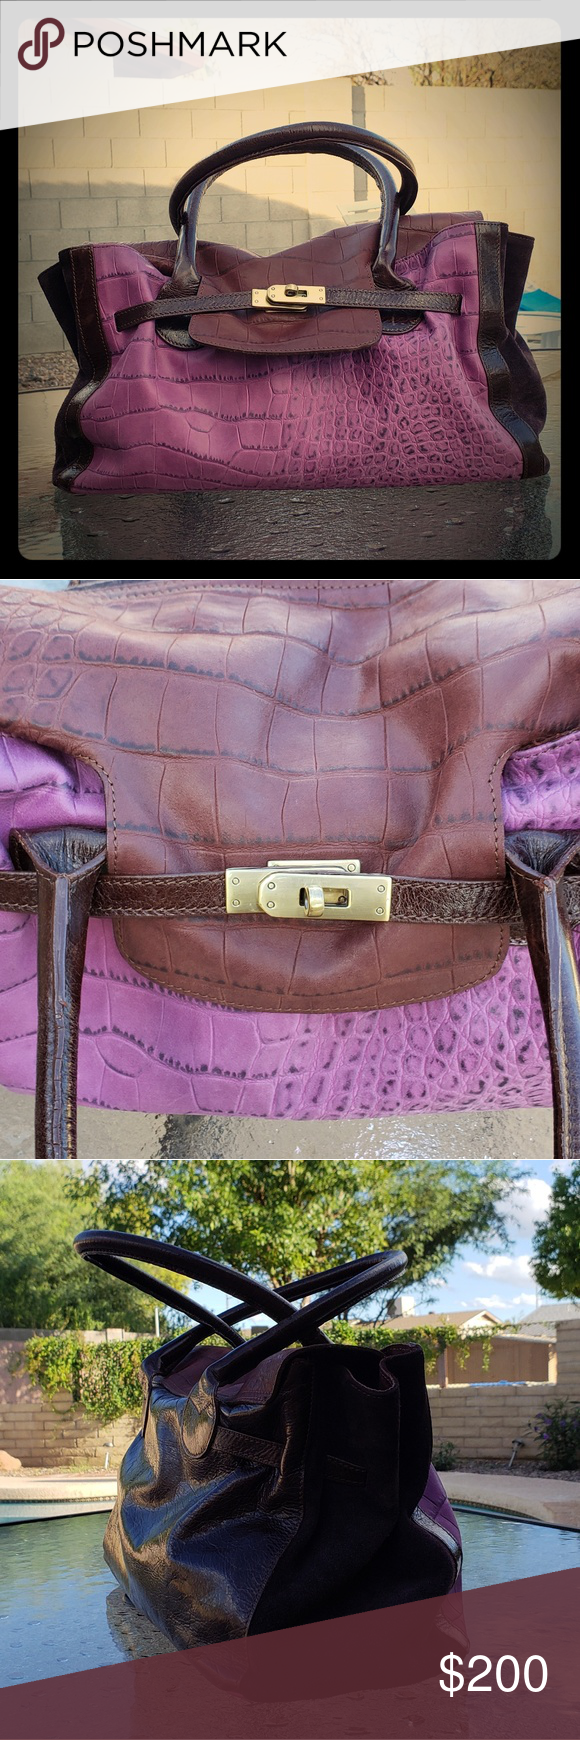 70295f0e6cfb 💜Innue Genuine Leather Made in Italy Handbag💜 Made in Italy ...